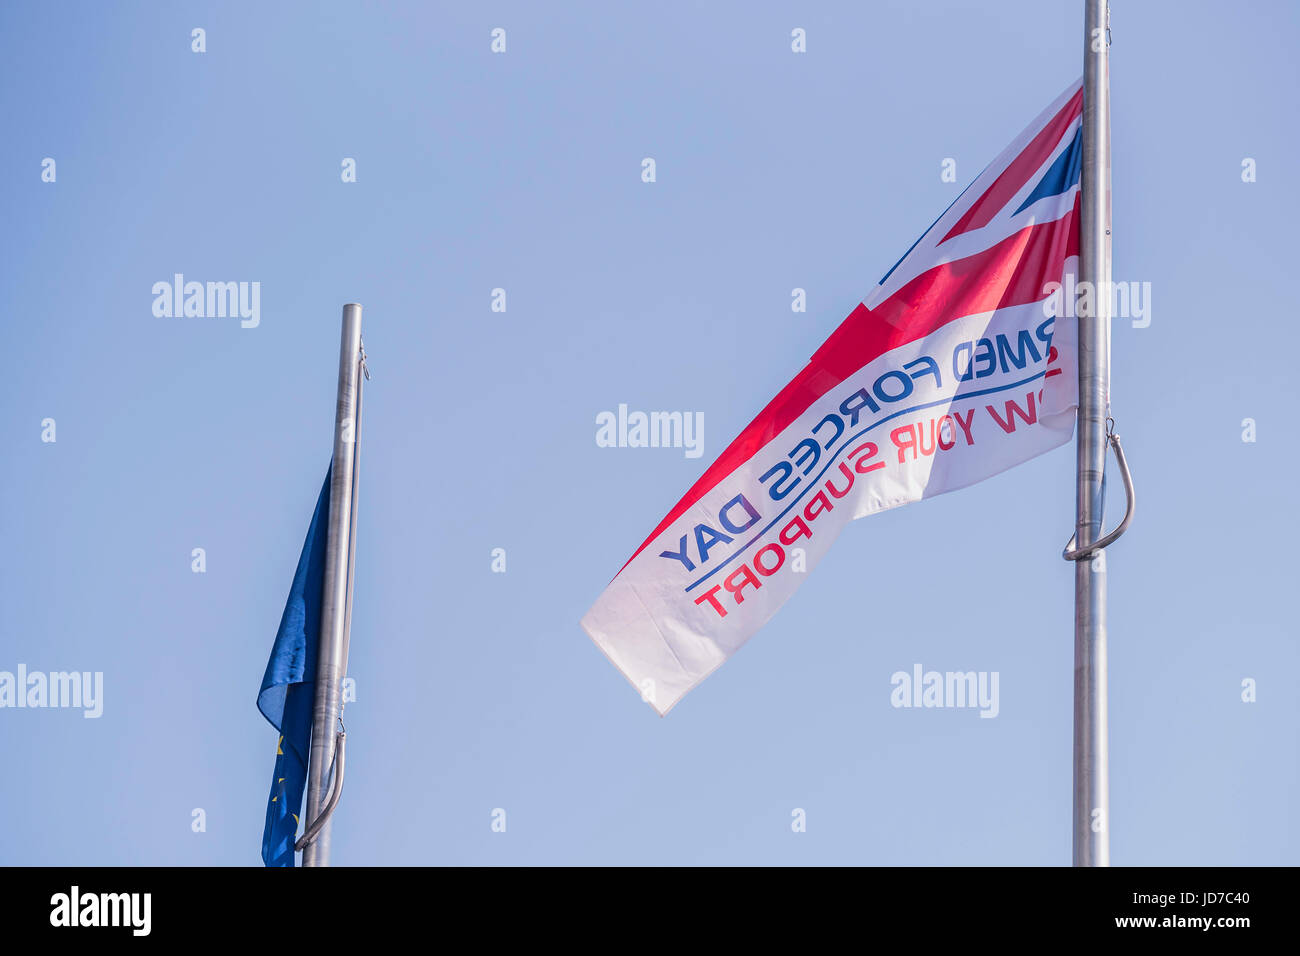 London, UK. 19th June, 2017. The flag - On befalf of the Mayor Sadiq Khan (who was called to a security meeting), - Stock Image